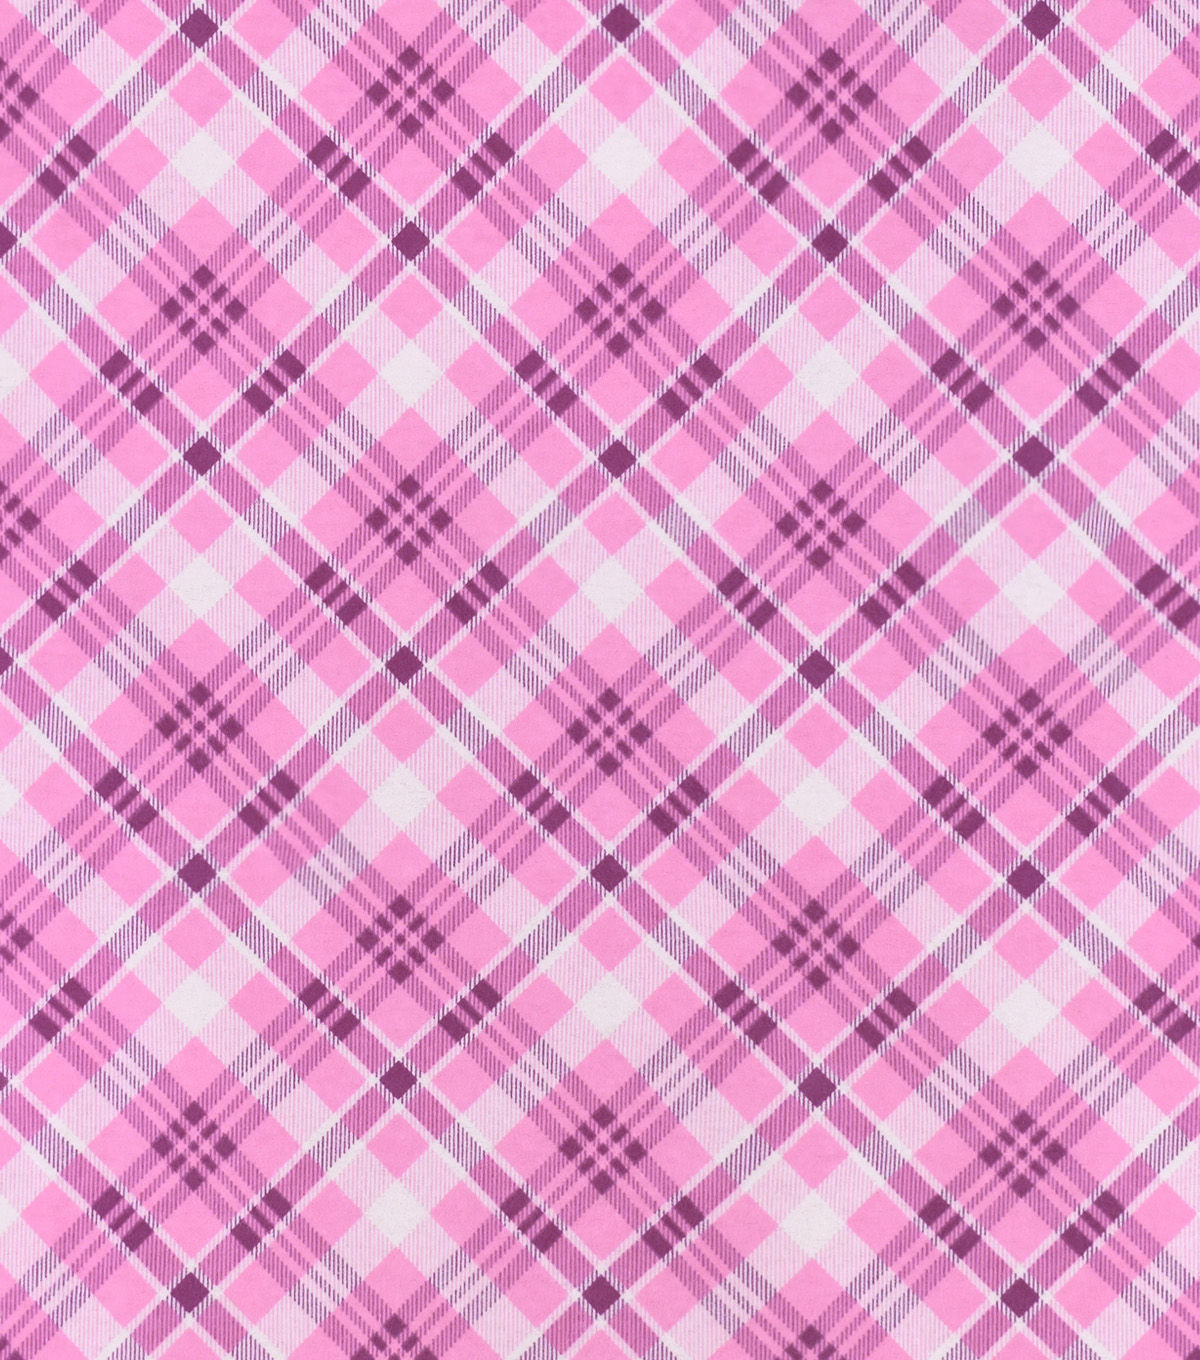 Snuggle Flannel Fabric-Pink Bias Plaid